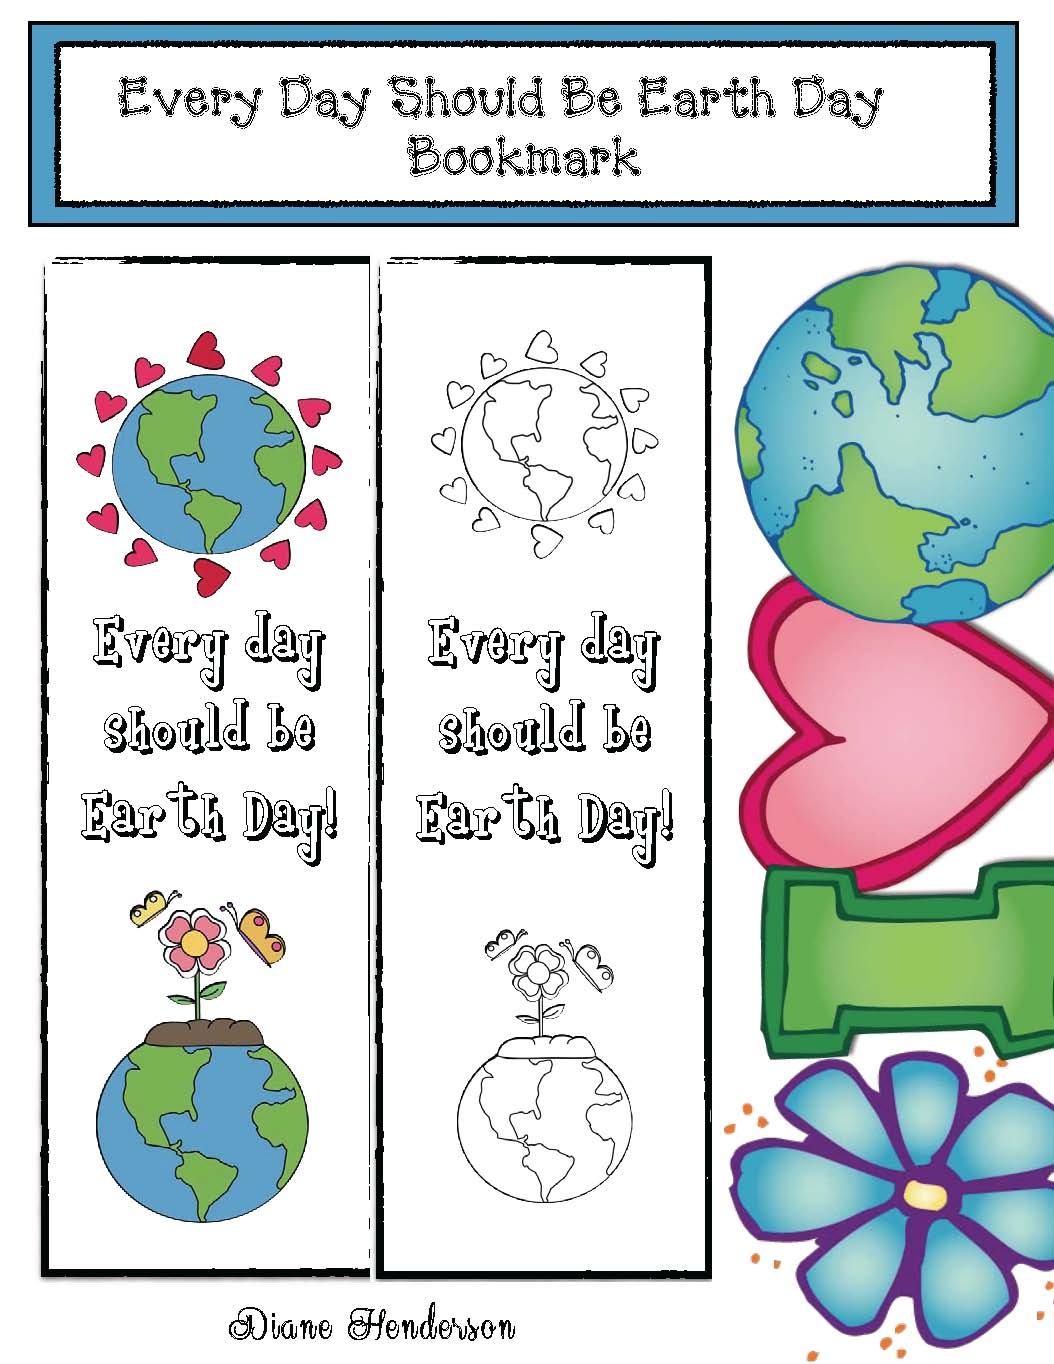 earth day crafts, earth day activities, earth day writing prompts, earth day bulletin board ideas, earth day bookmarks, cylinder shape crafts, cylinder shape activities, free earth day, earth day bookmark, environmental footprint activities